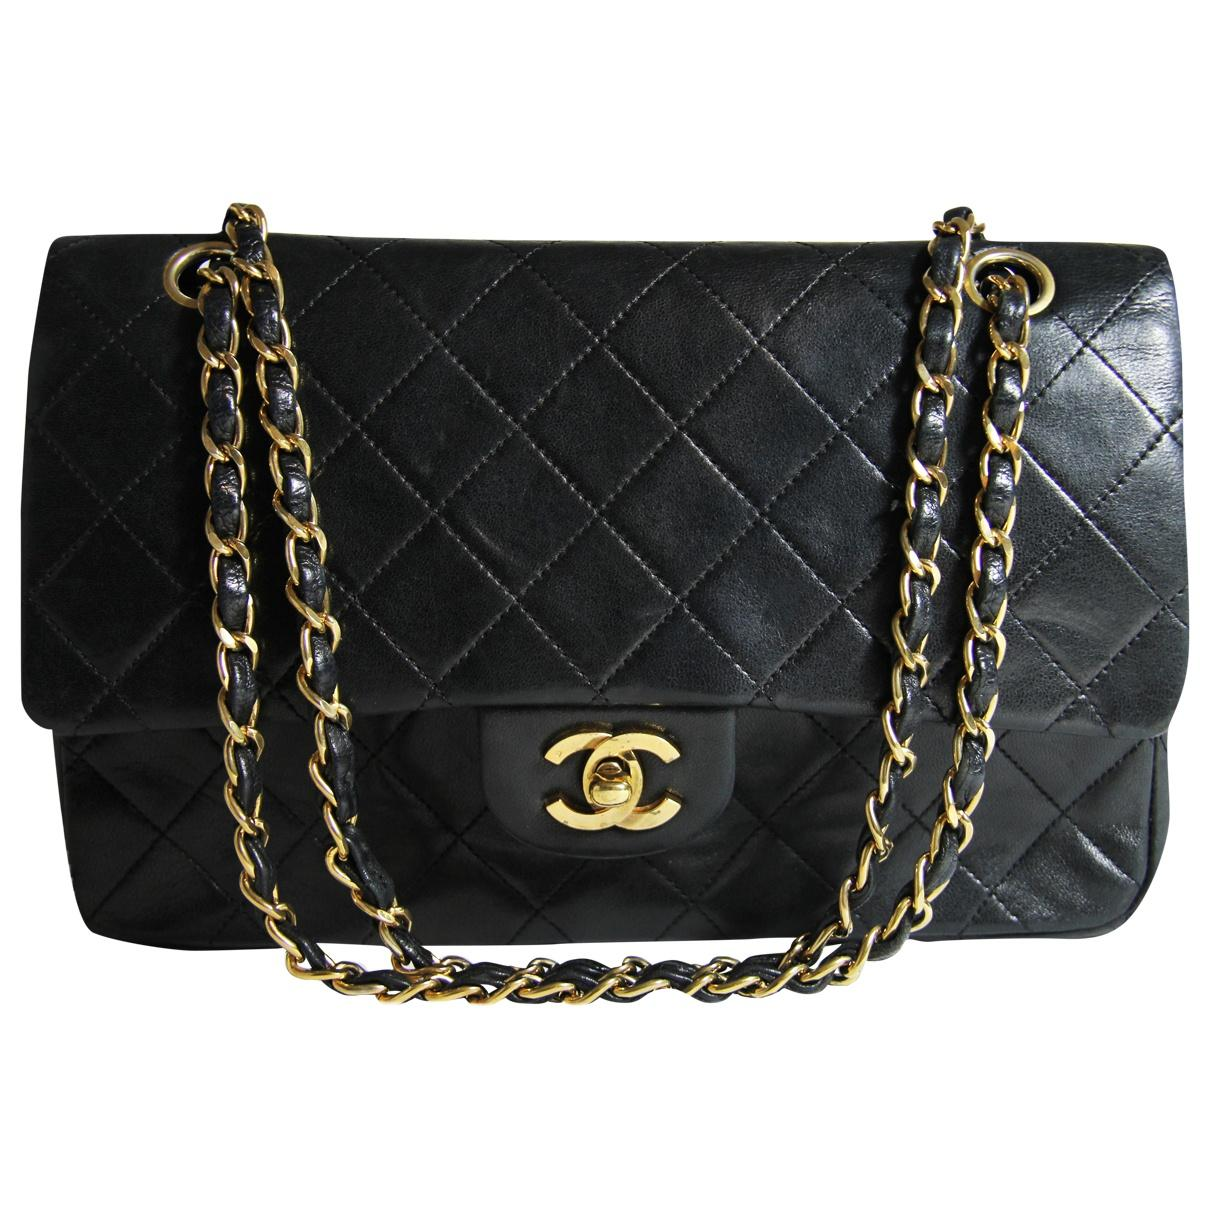 98176d9e46ca Chanel. Women's Pre-owned Vintage Timeless/classique Black Leather Handbags.  £1,916 From Vestiaire Collective